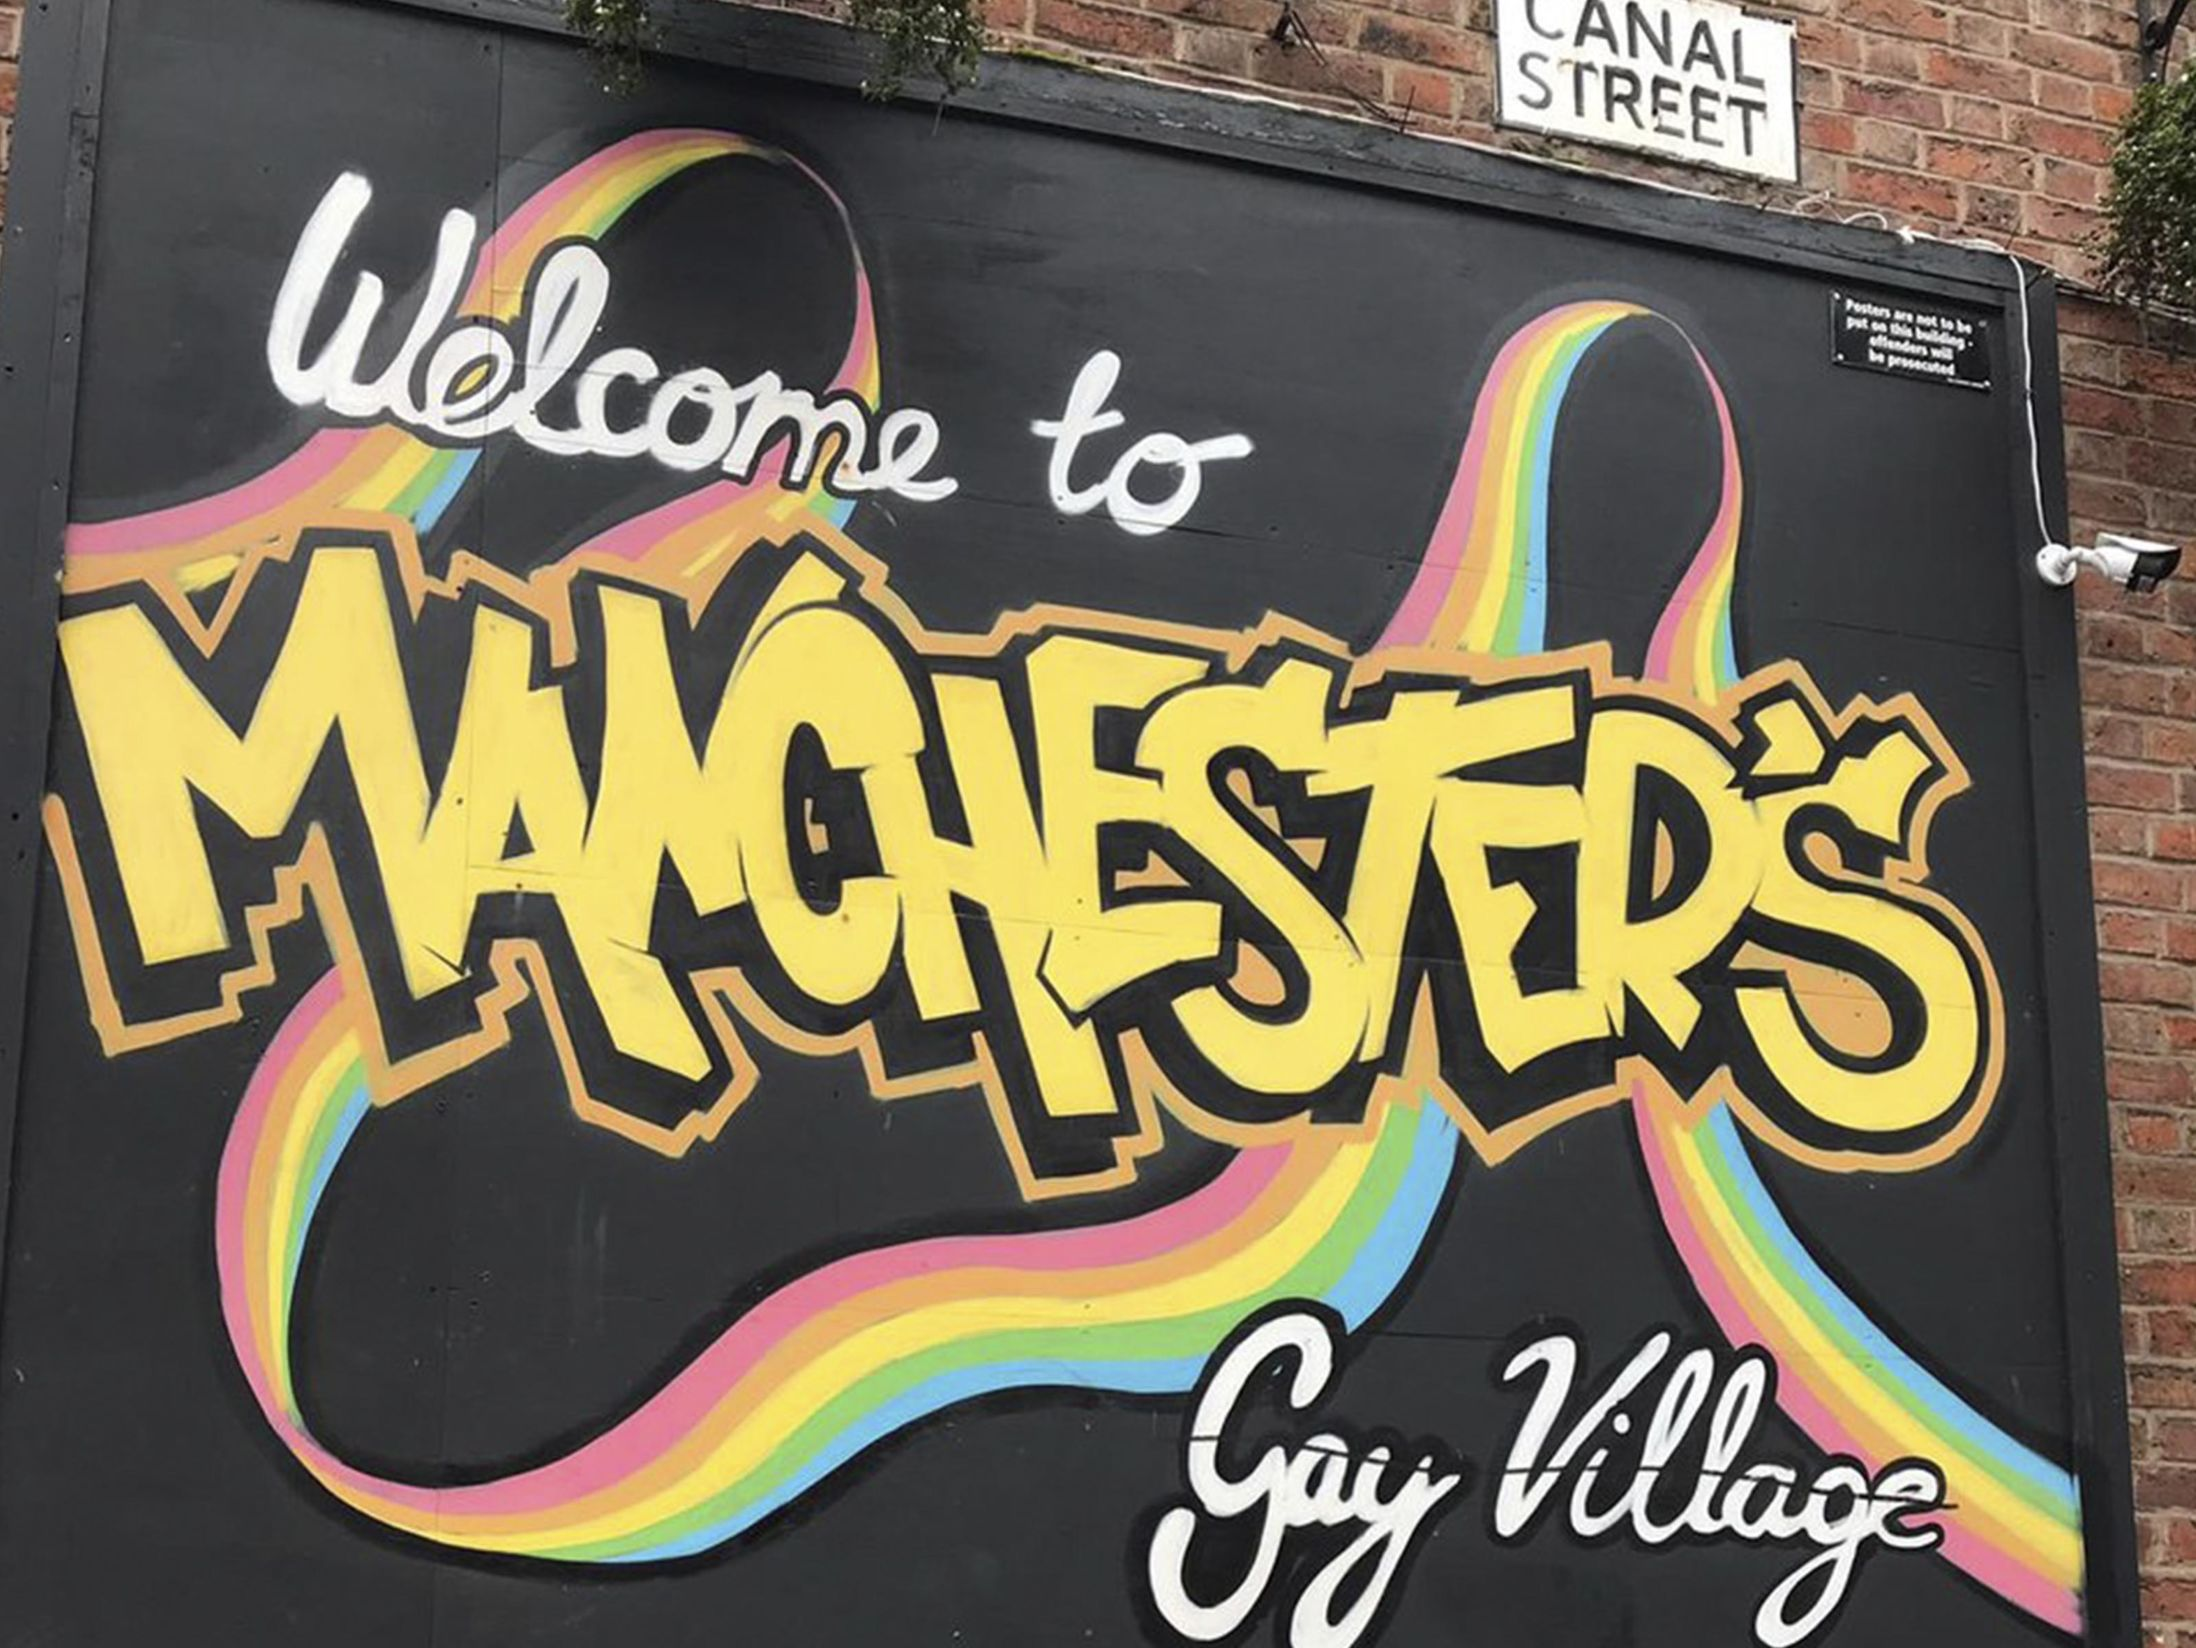 Manchester Events to Know About - Manchester Pride Festival